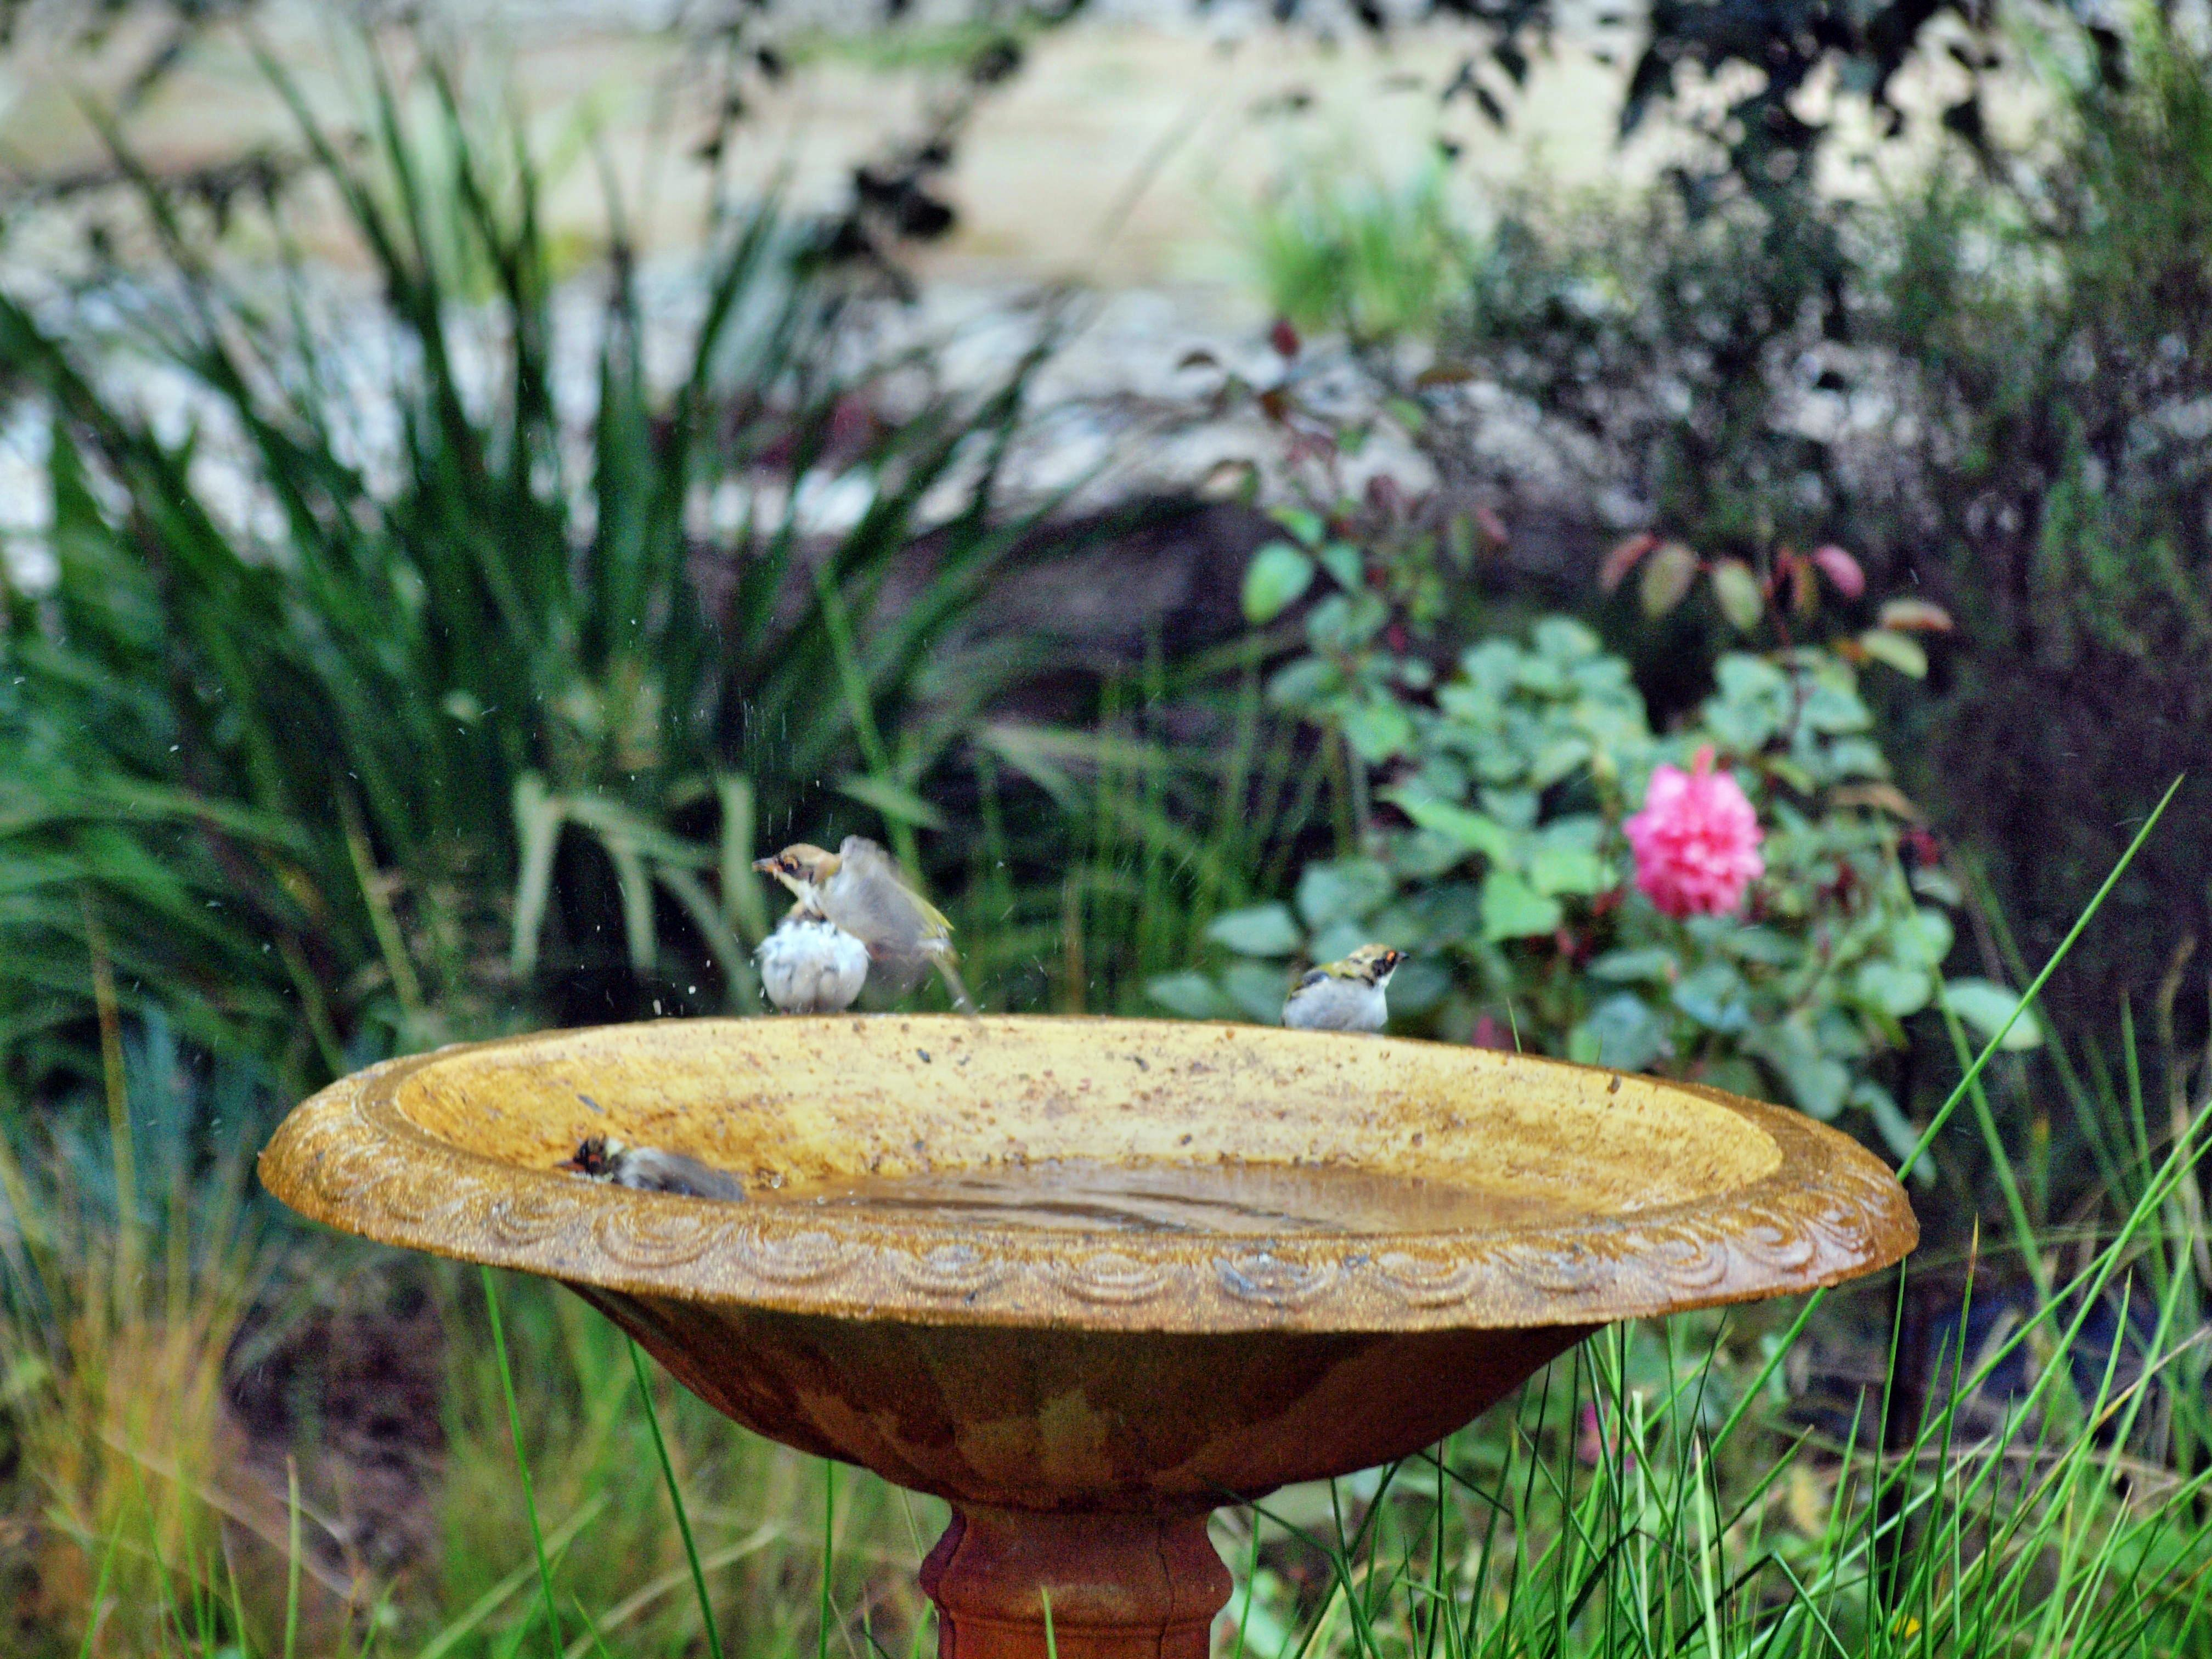 Bird-bath-39.jpeg